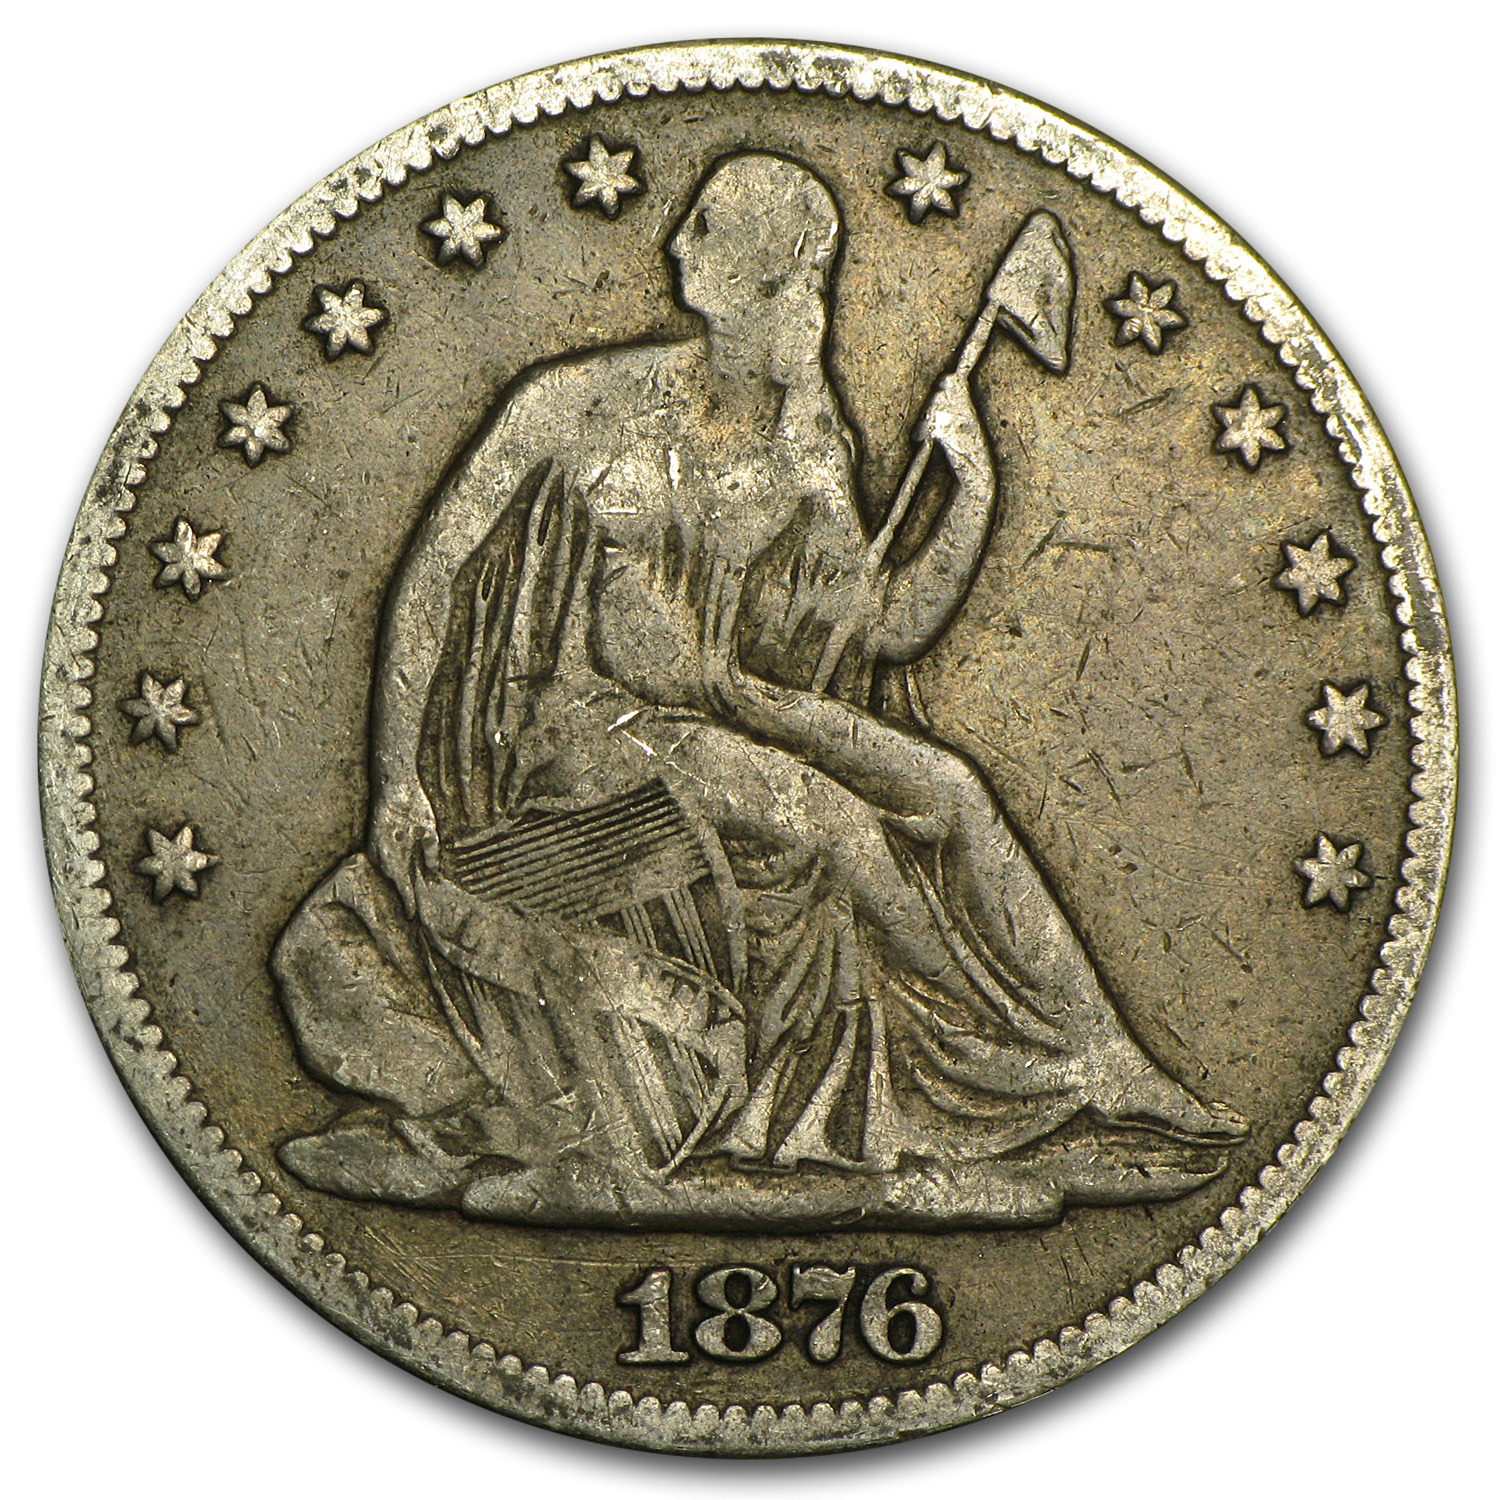 1876 Seated Liberty Half Dollar - Fine